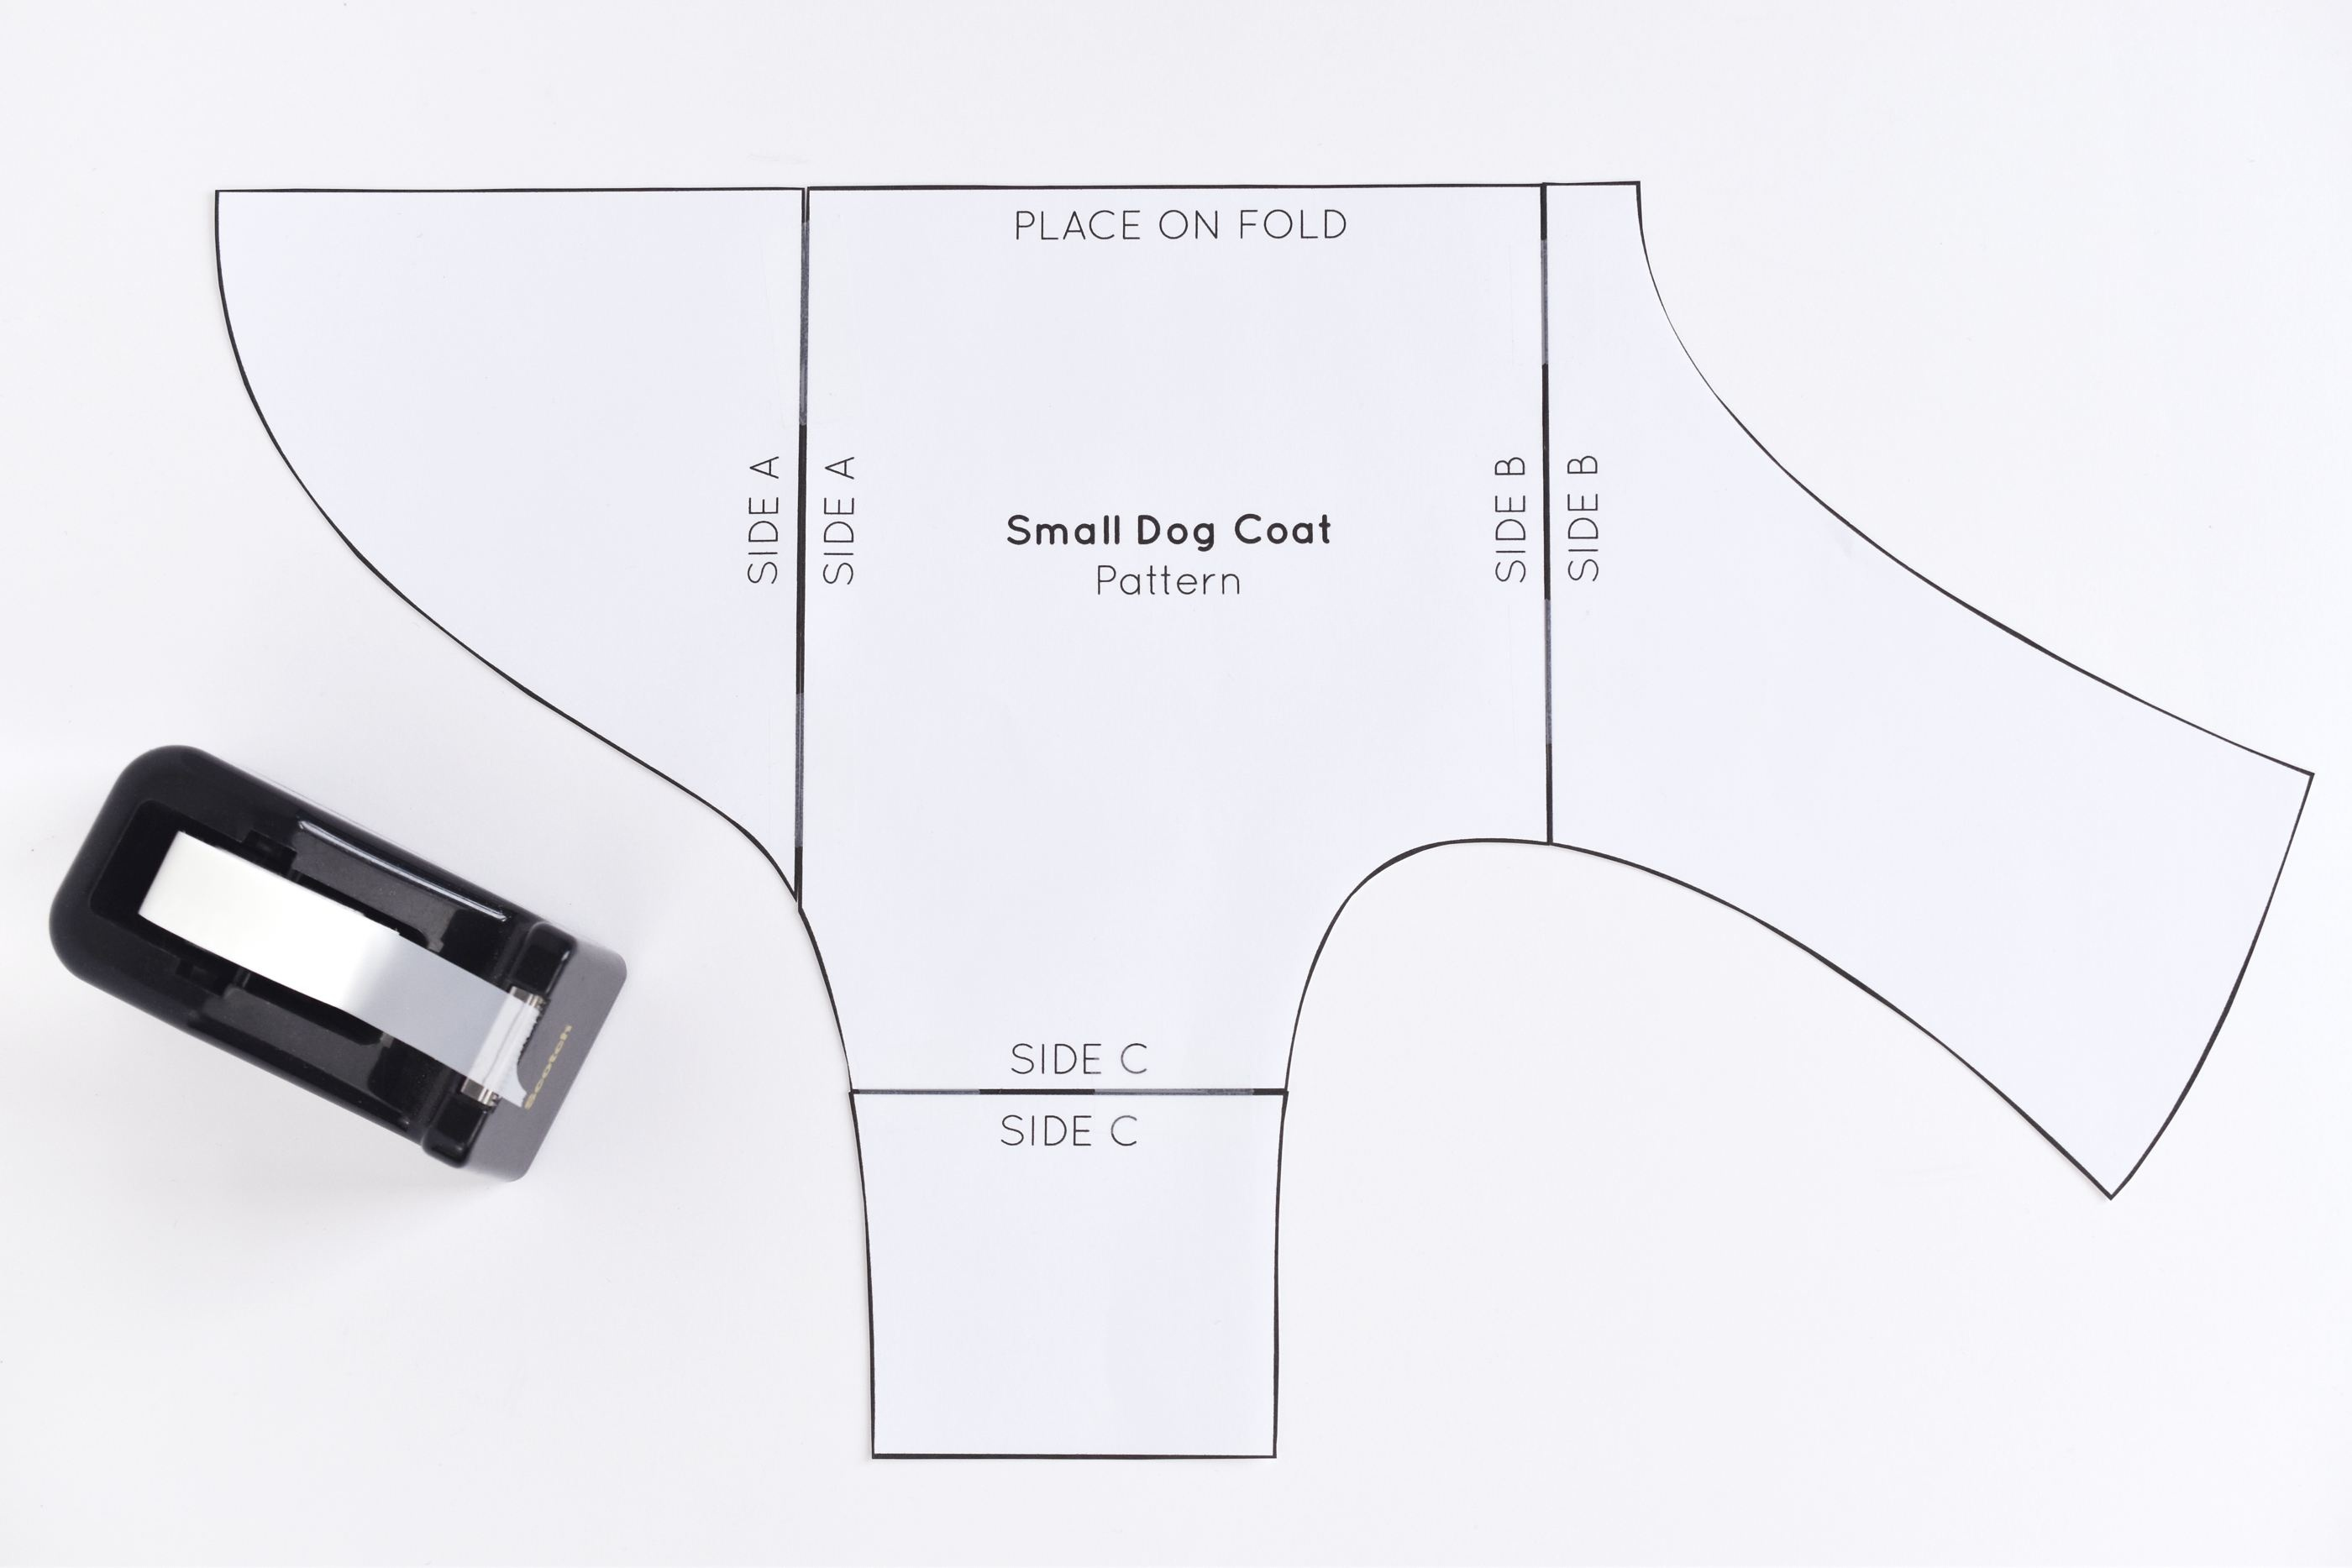 Free Sewing Pattern For A Warm, Weatherproof Dog Coat - Free Printable Dachshund Sewing Pattern